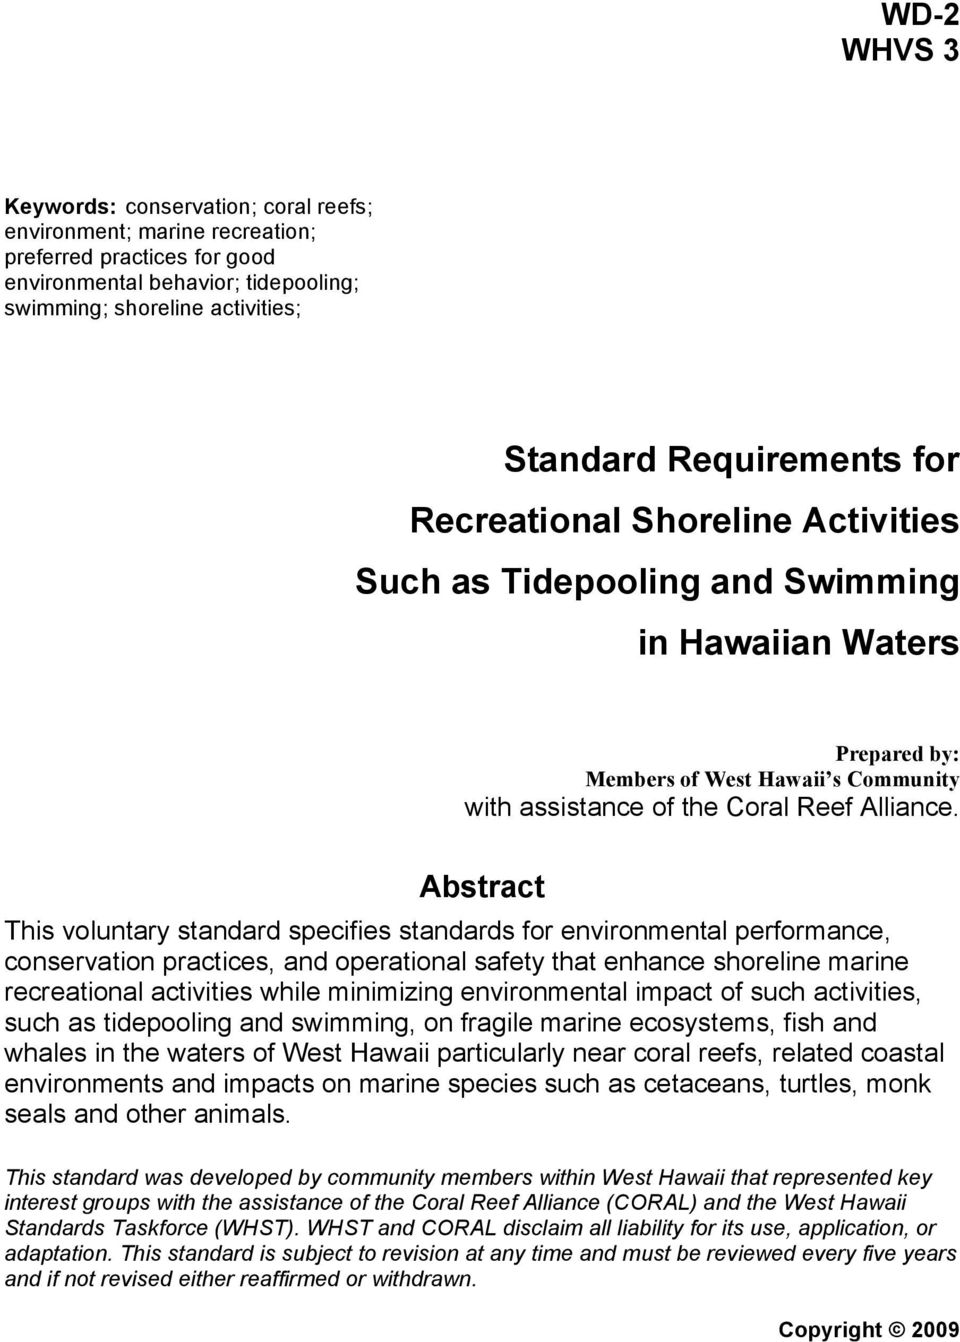 Abstract This voluntary standard specifies standards for environmental performance, conservation practices, and operational safety that enhance shoreline marine recreational activities while